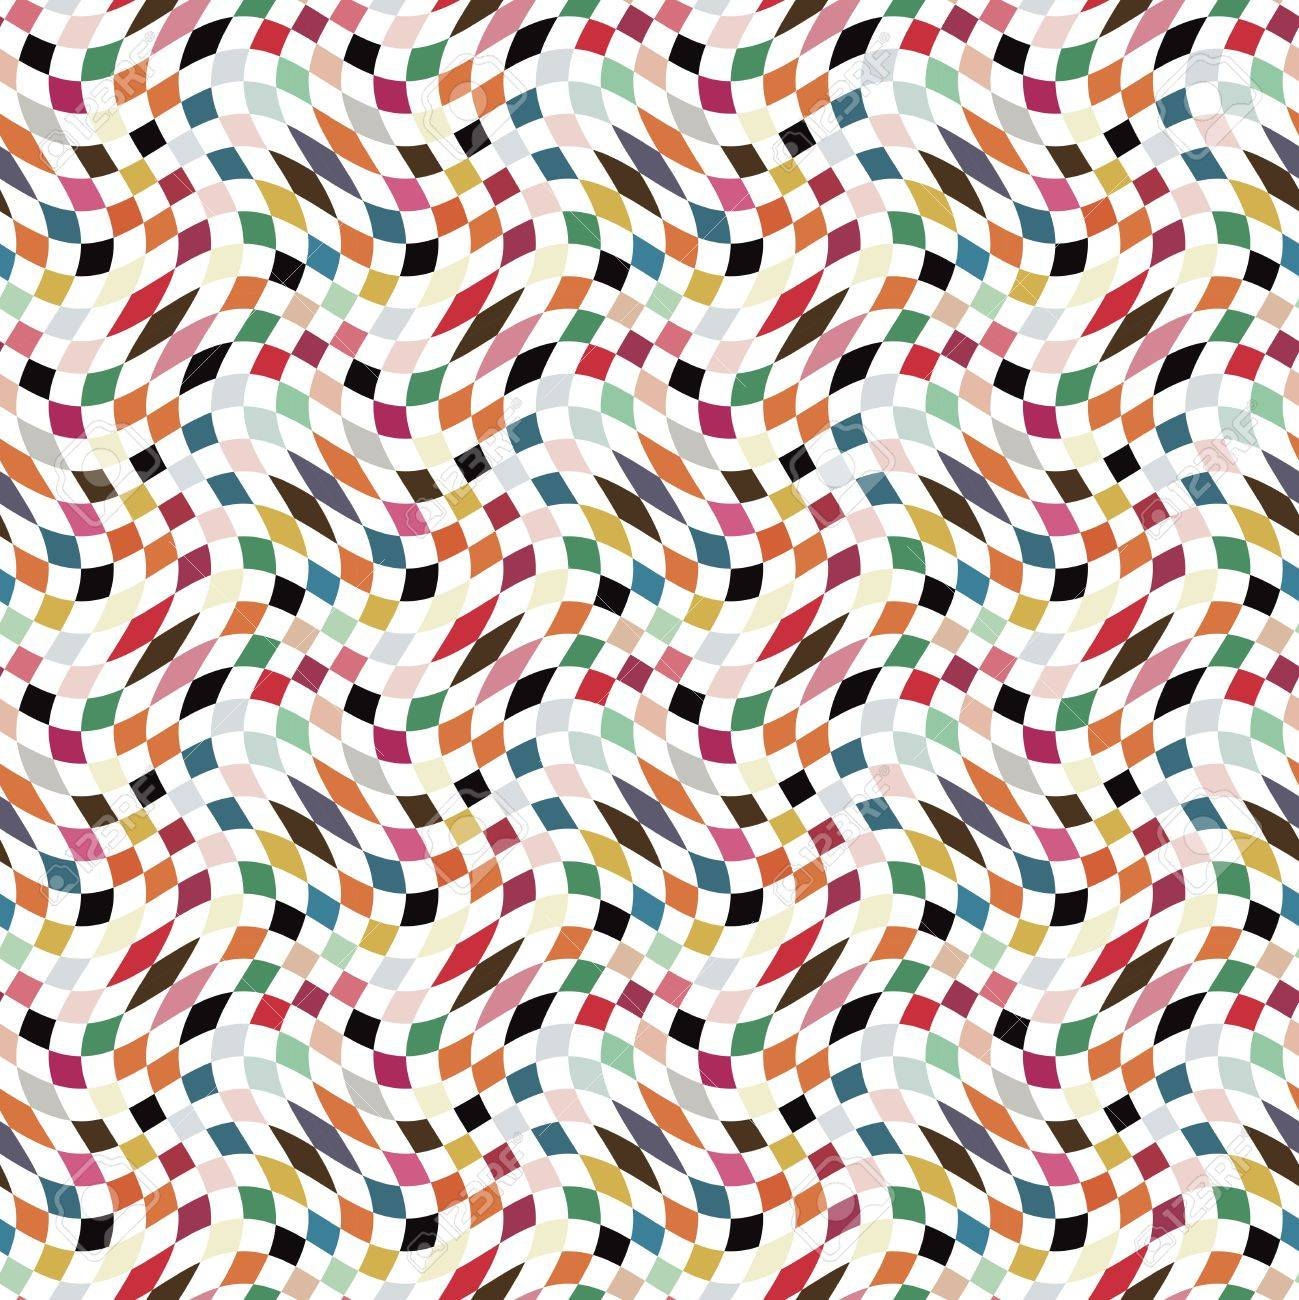 Abstract colorful geometric background  Seamless pattern Stock Photo - 19867824